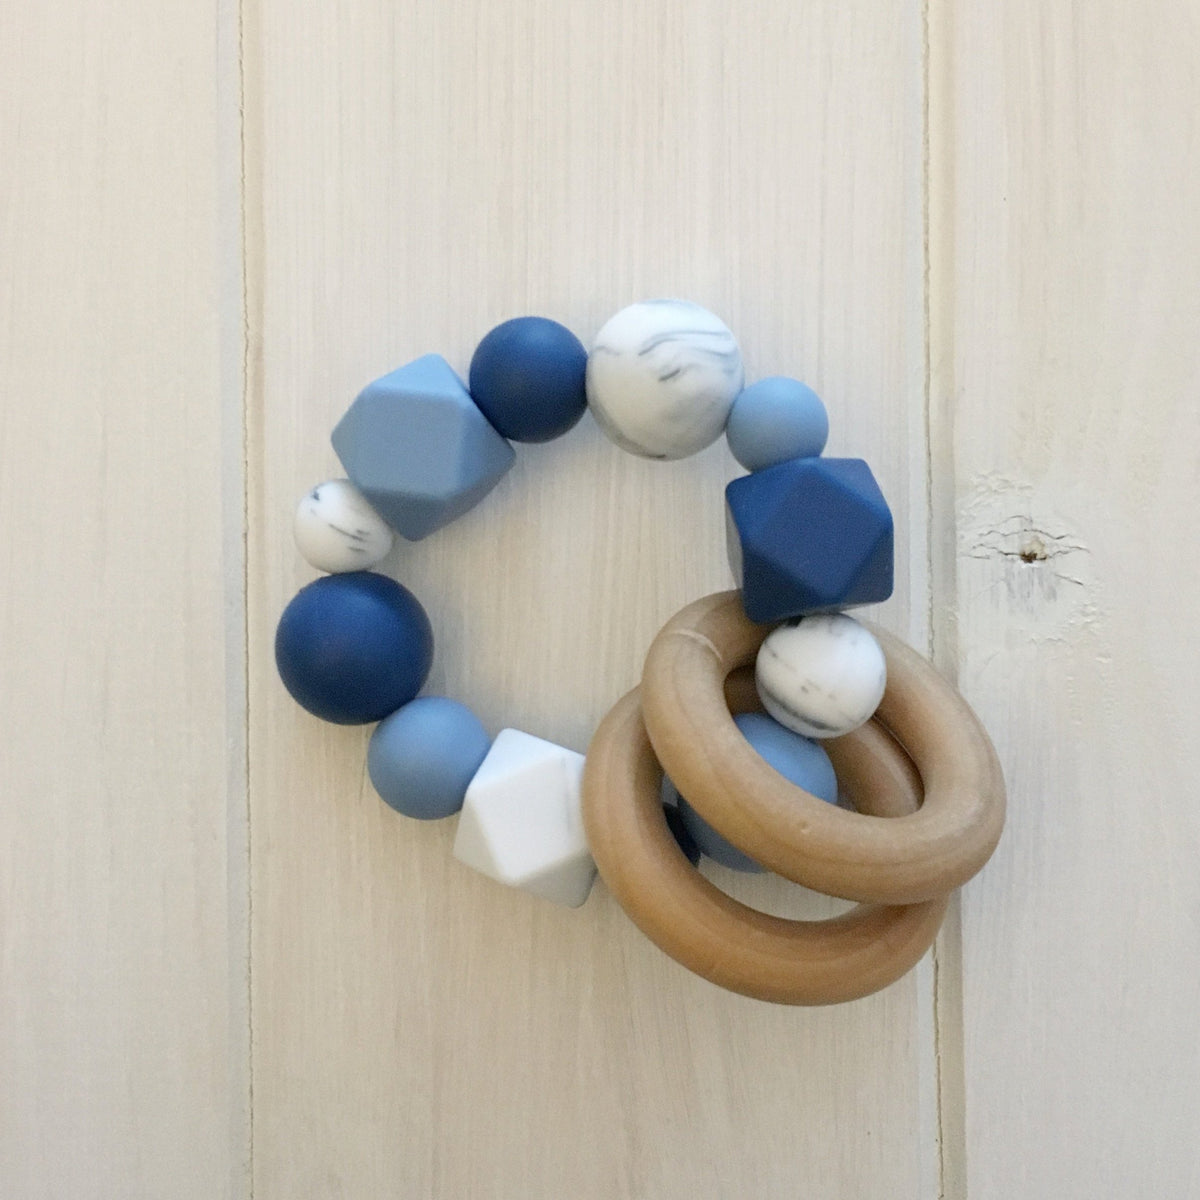 Blue Marble Silicone Teething Rattle